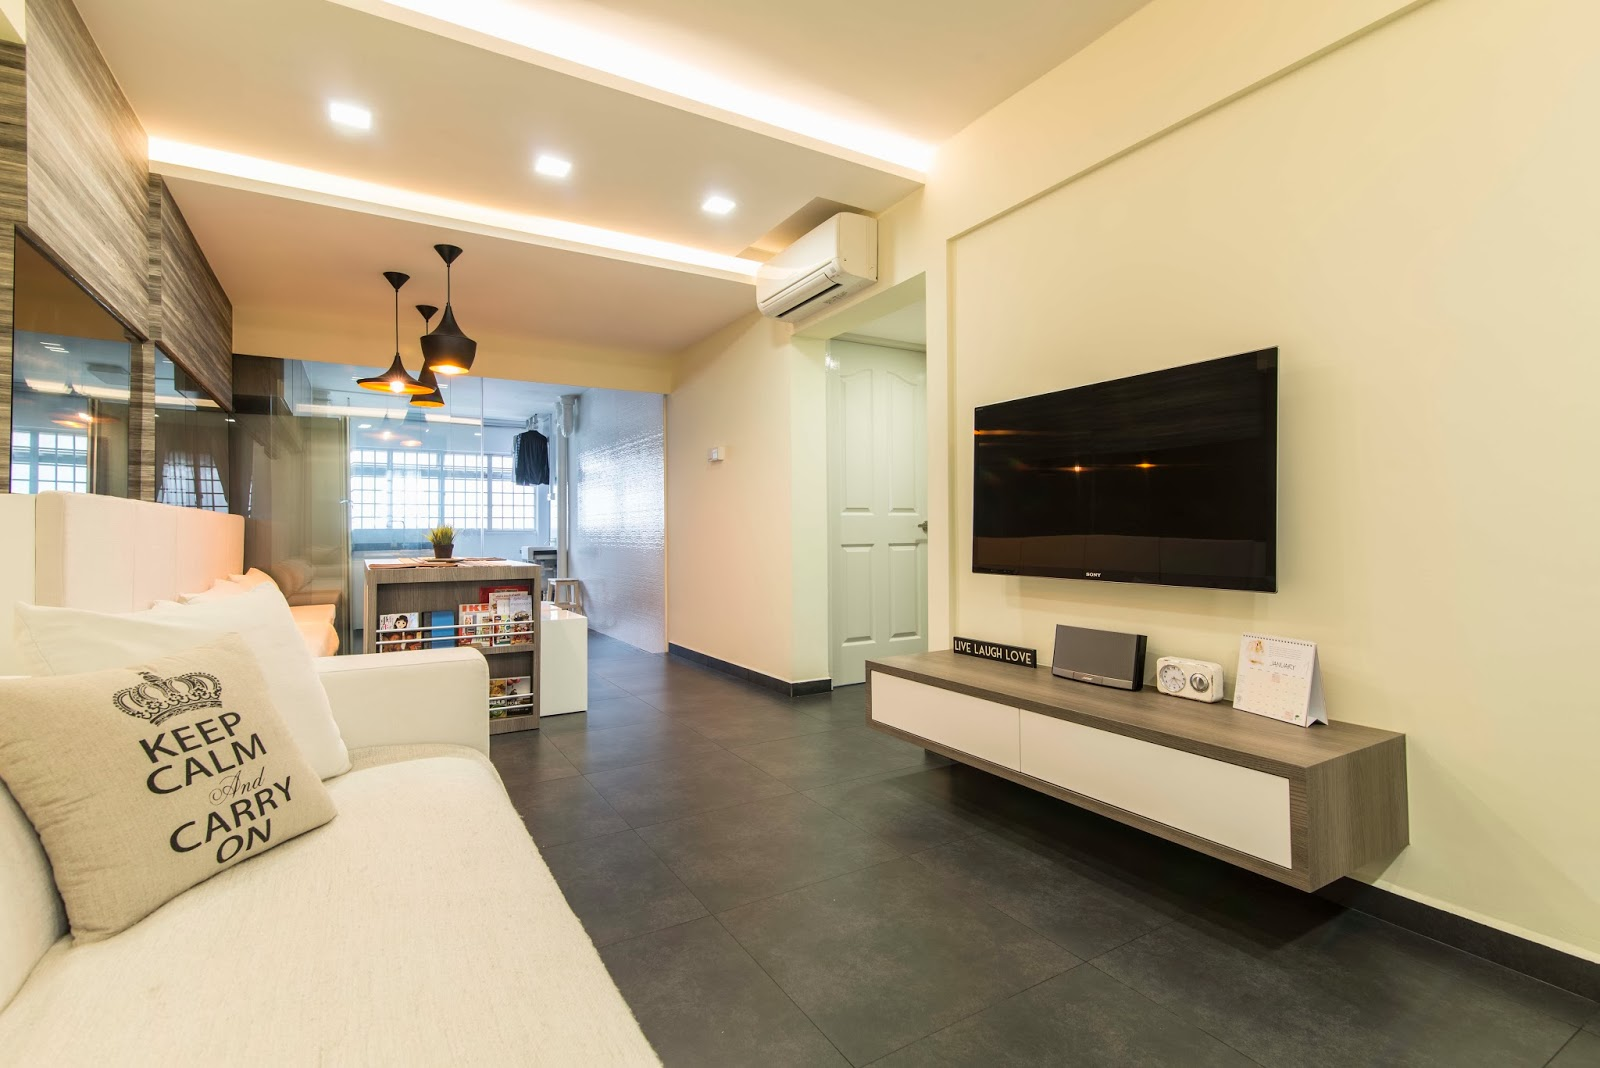 Interior design guide hdb 3 rooms interior design for Interior design singapore hdb 5 room flat